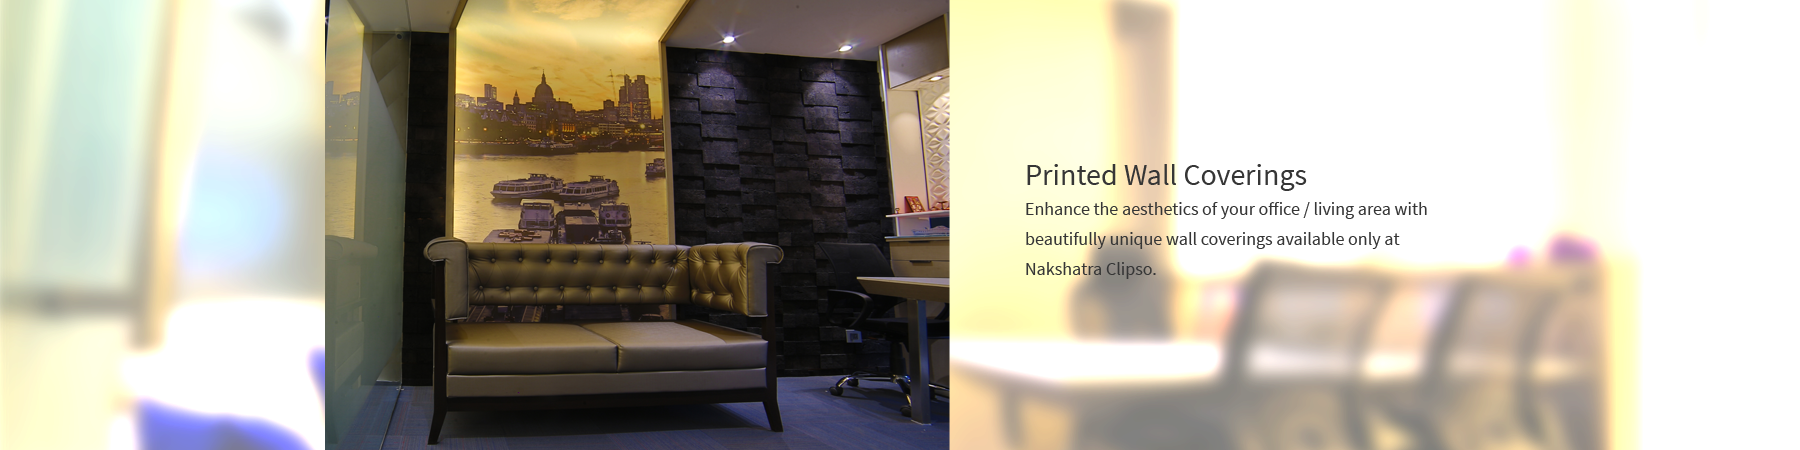 Printed Wall Coverings